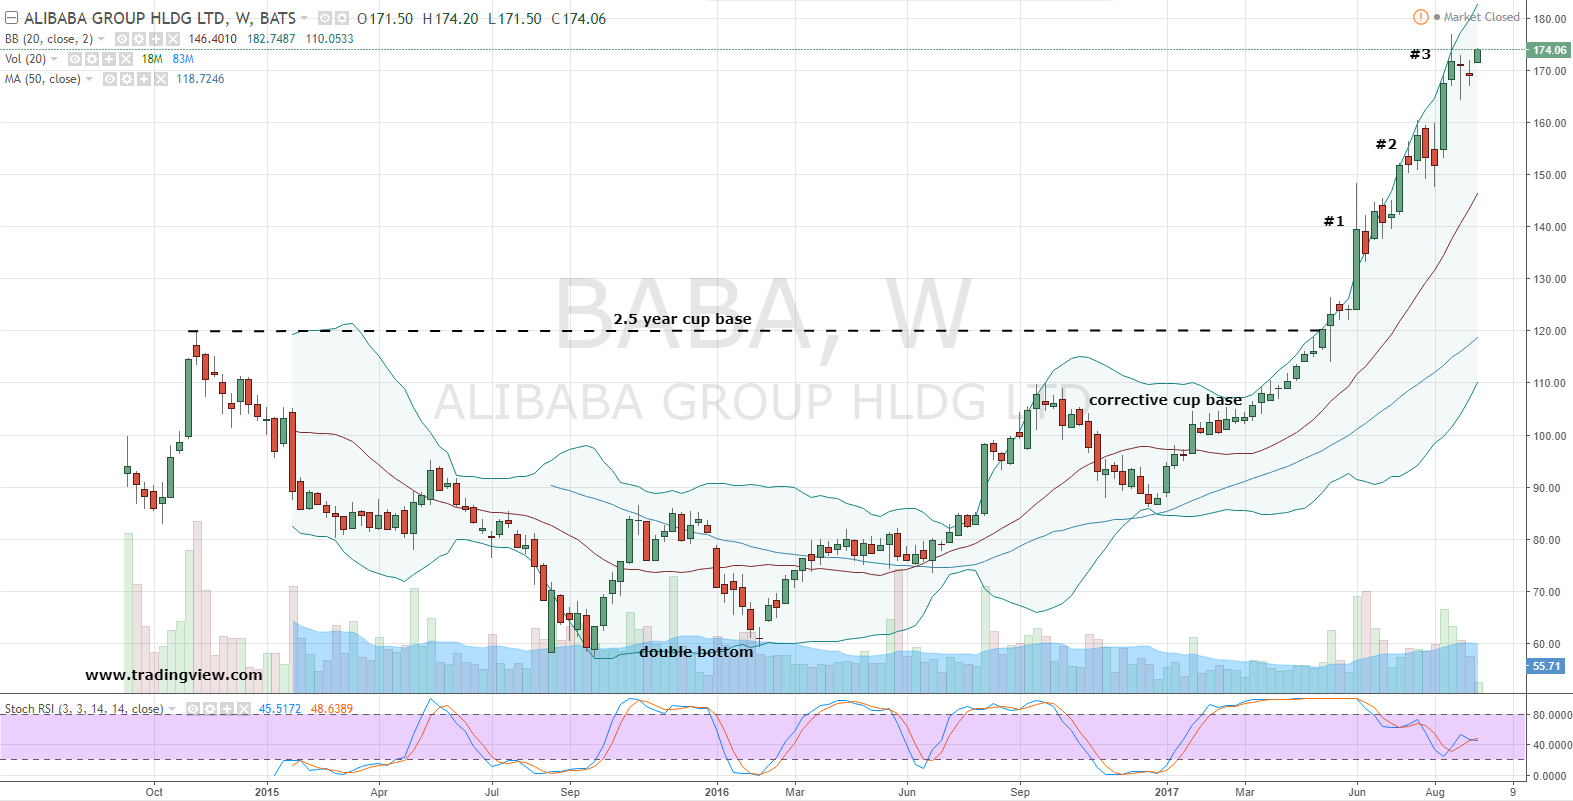 Mirador Capital Partners LP Takes Position in Alibaba Group Holding Limited (BABA)